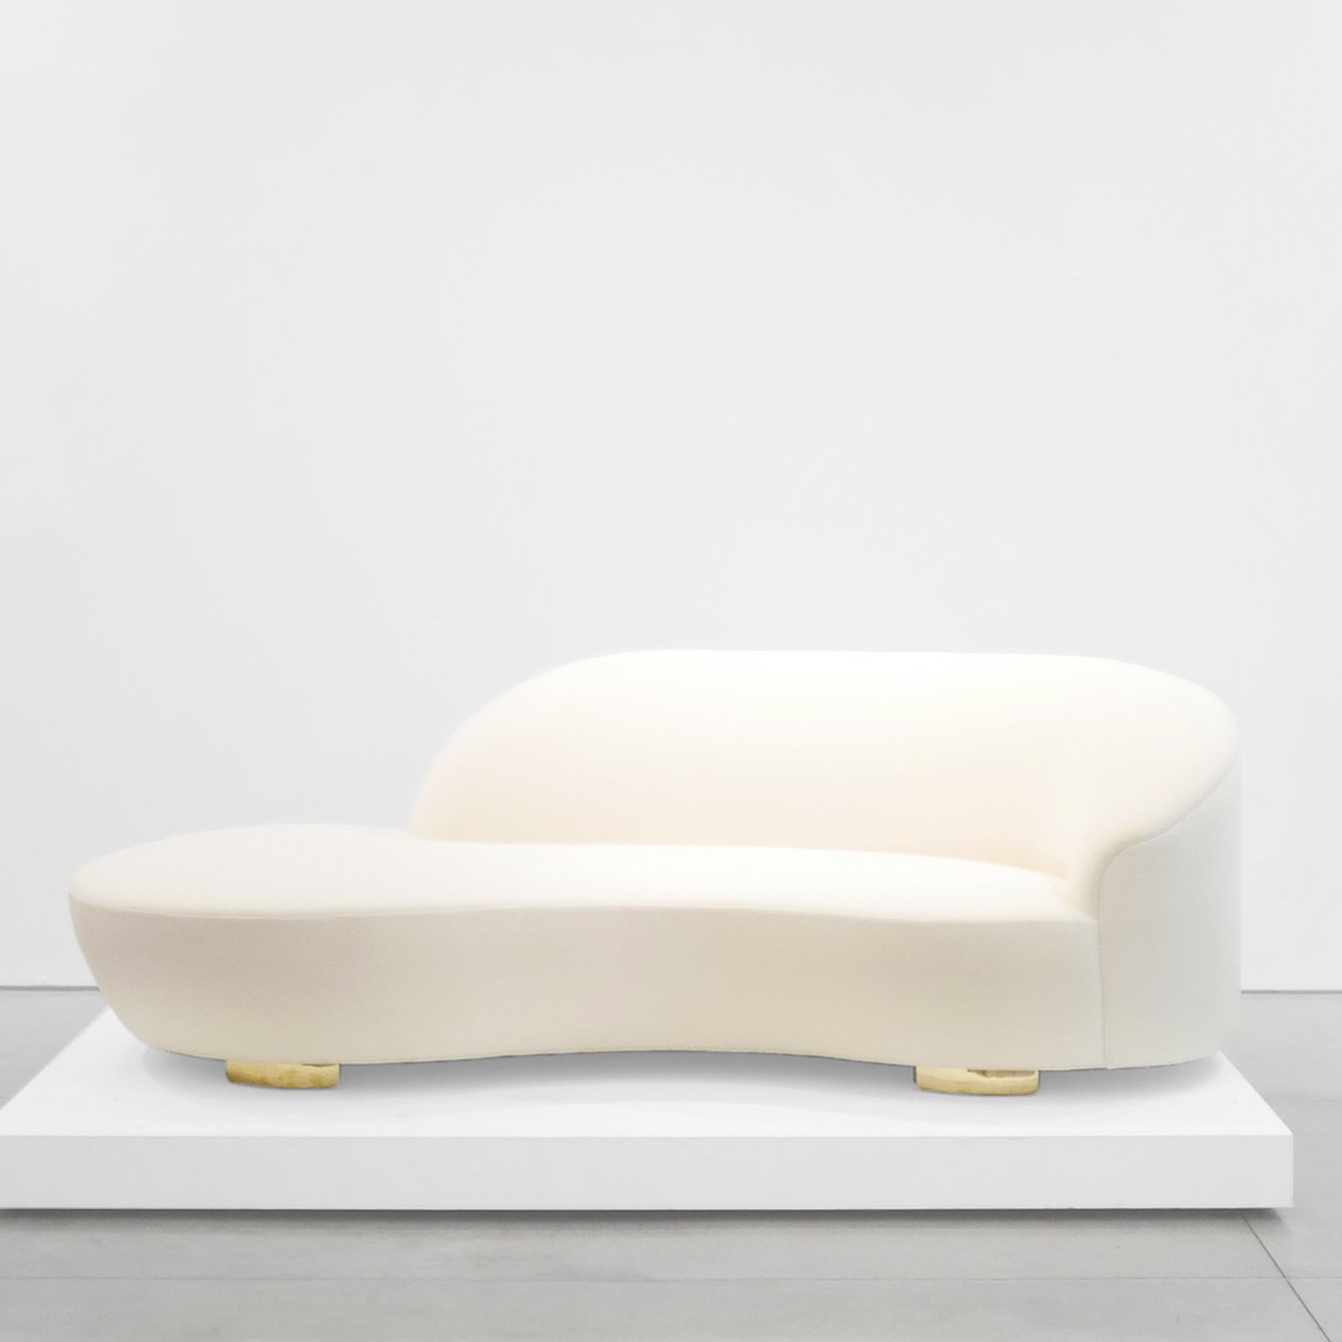 vladimir kagan 'cloud' sofa SOLD